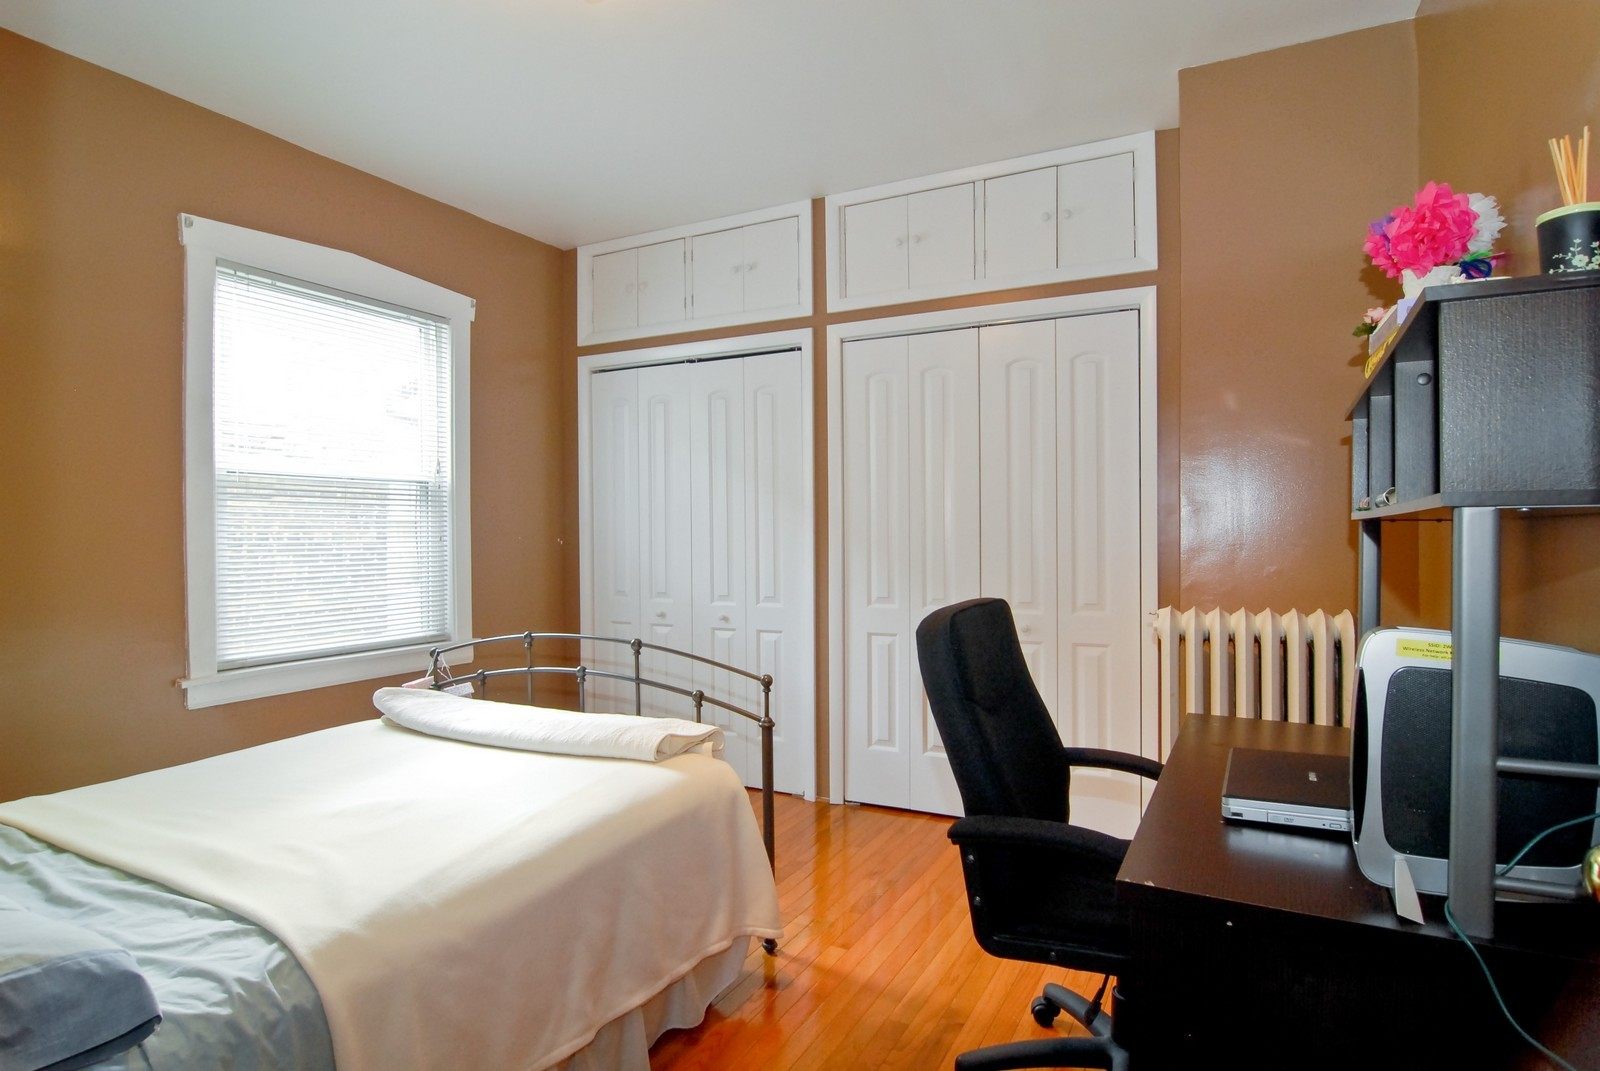 Real Estate Photography - 2842 N Keating, Chicago, IL, 60641 - Bedroom